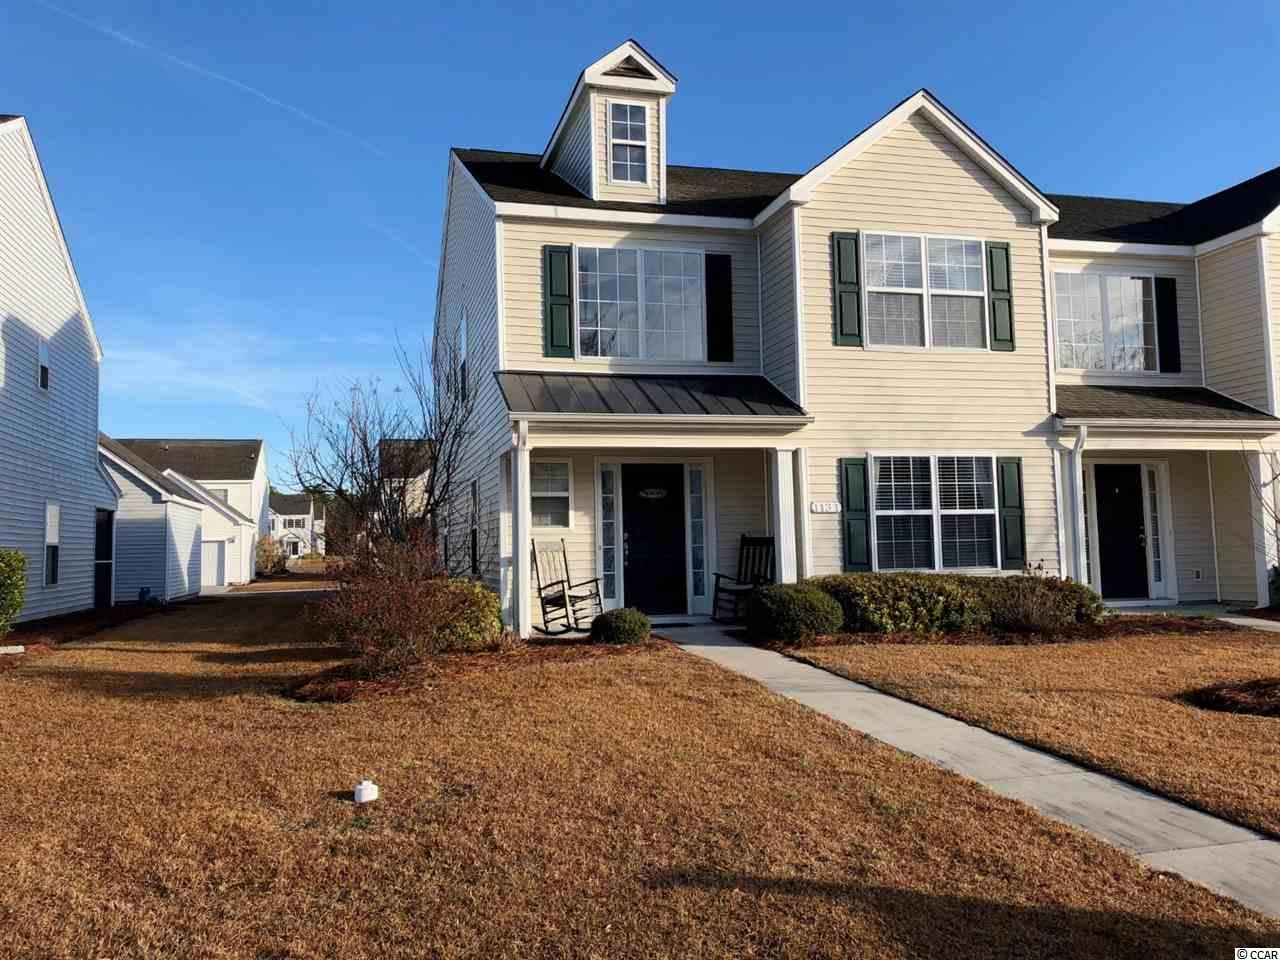 End Unit Condo in The Orchards at The Farm : Myrtle Beach South Carolina